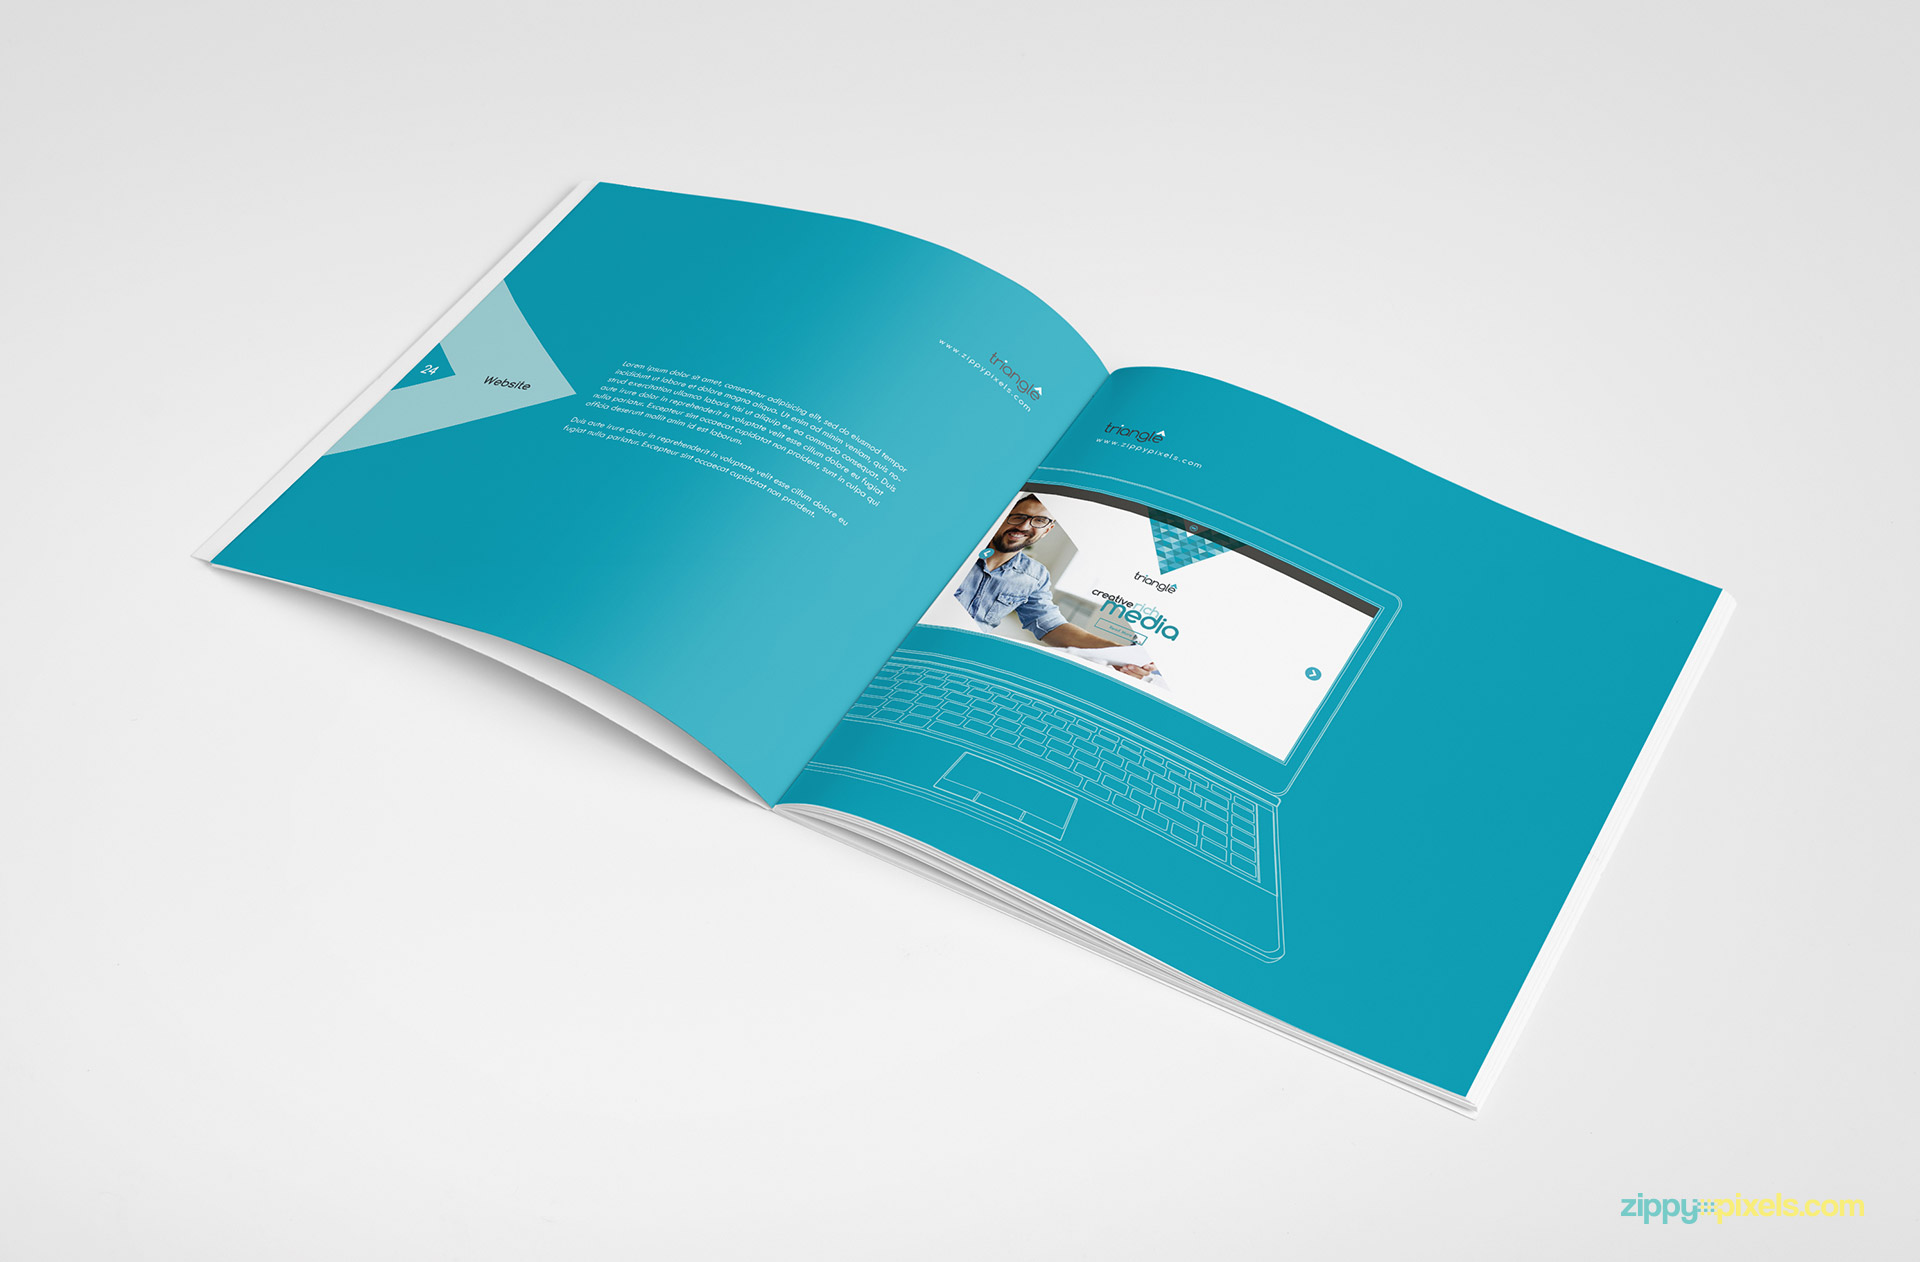 15-brand-book-11-website